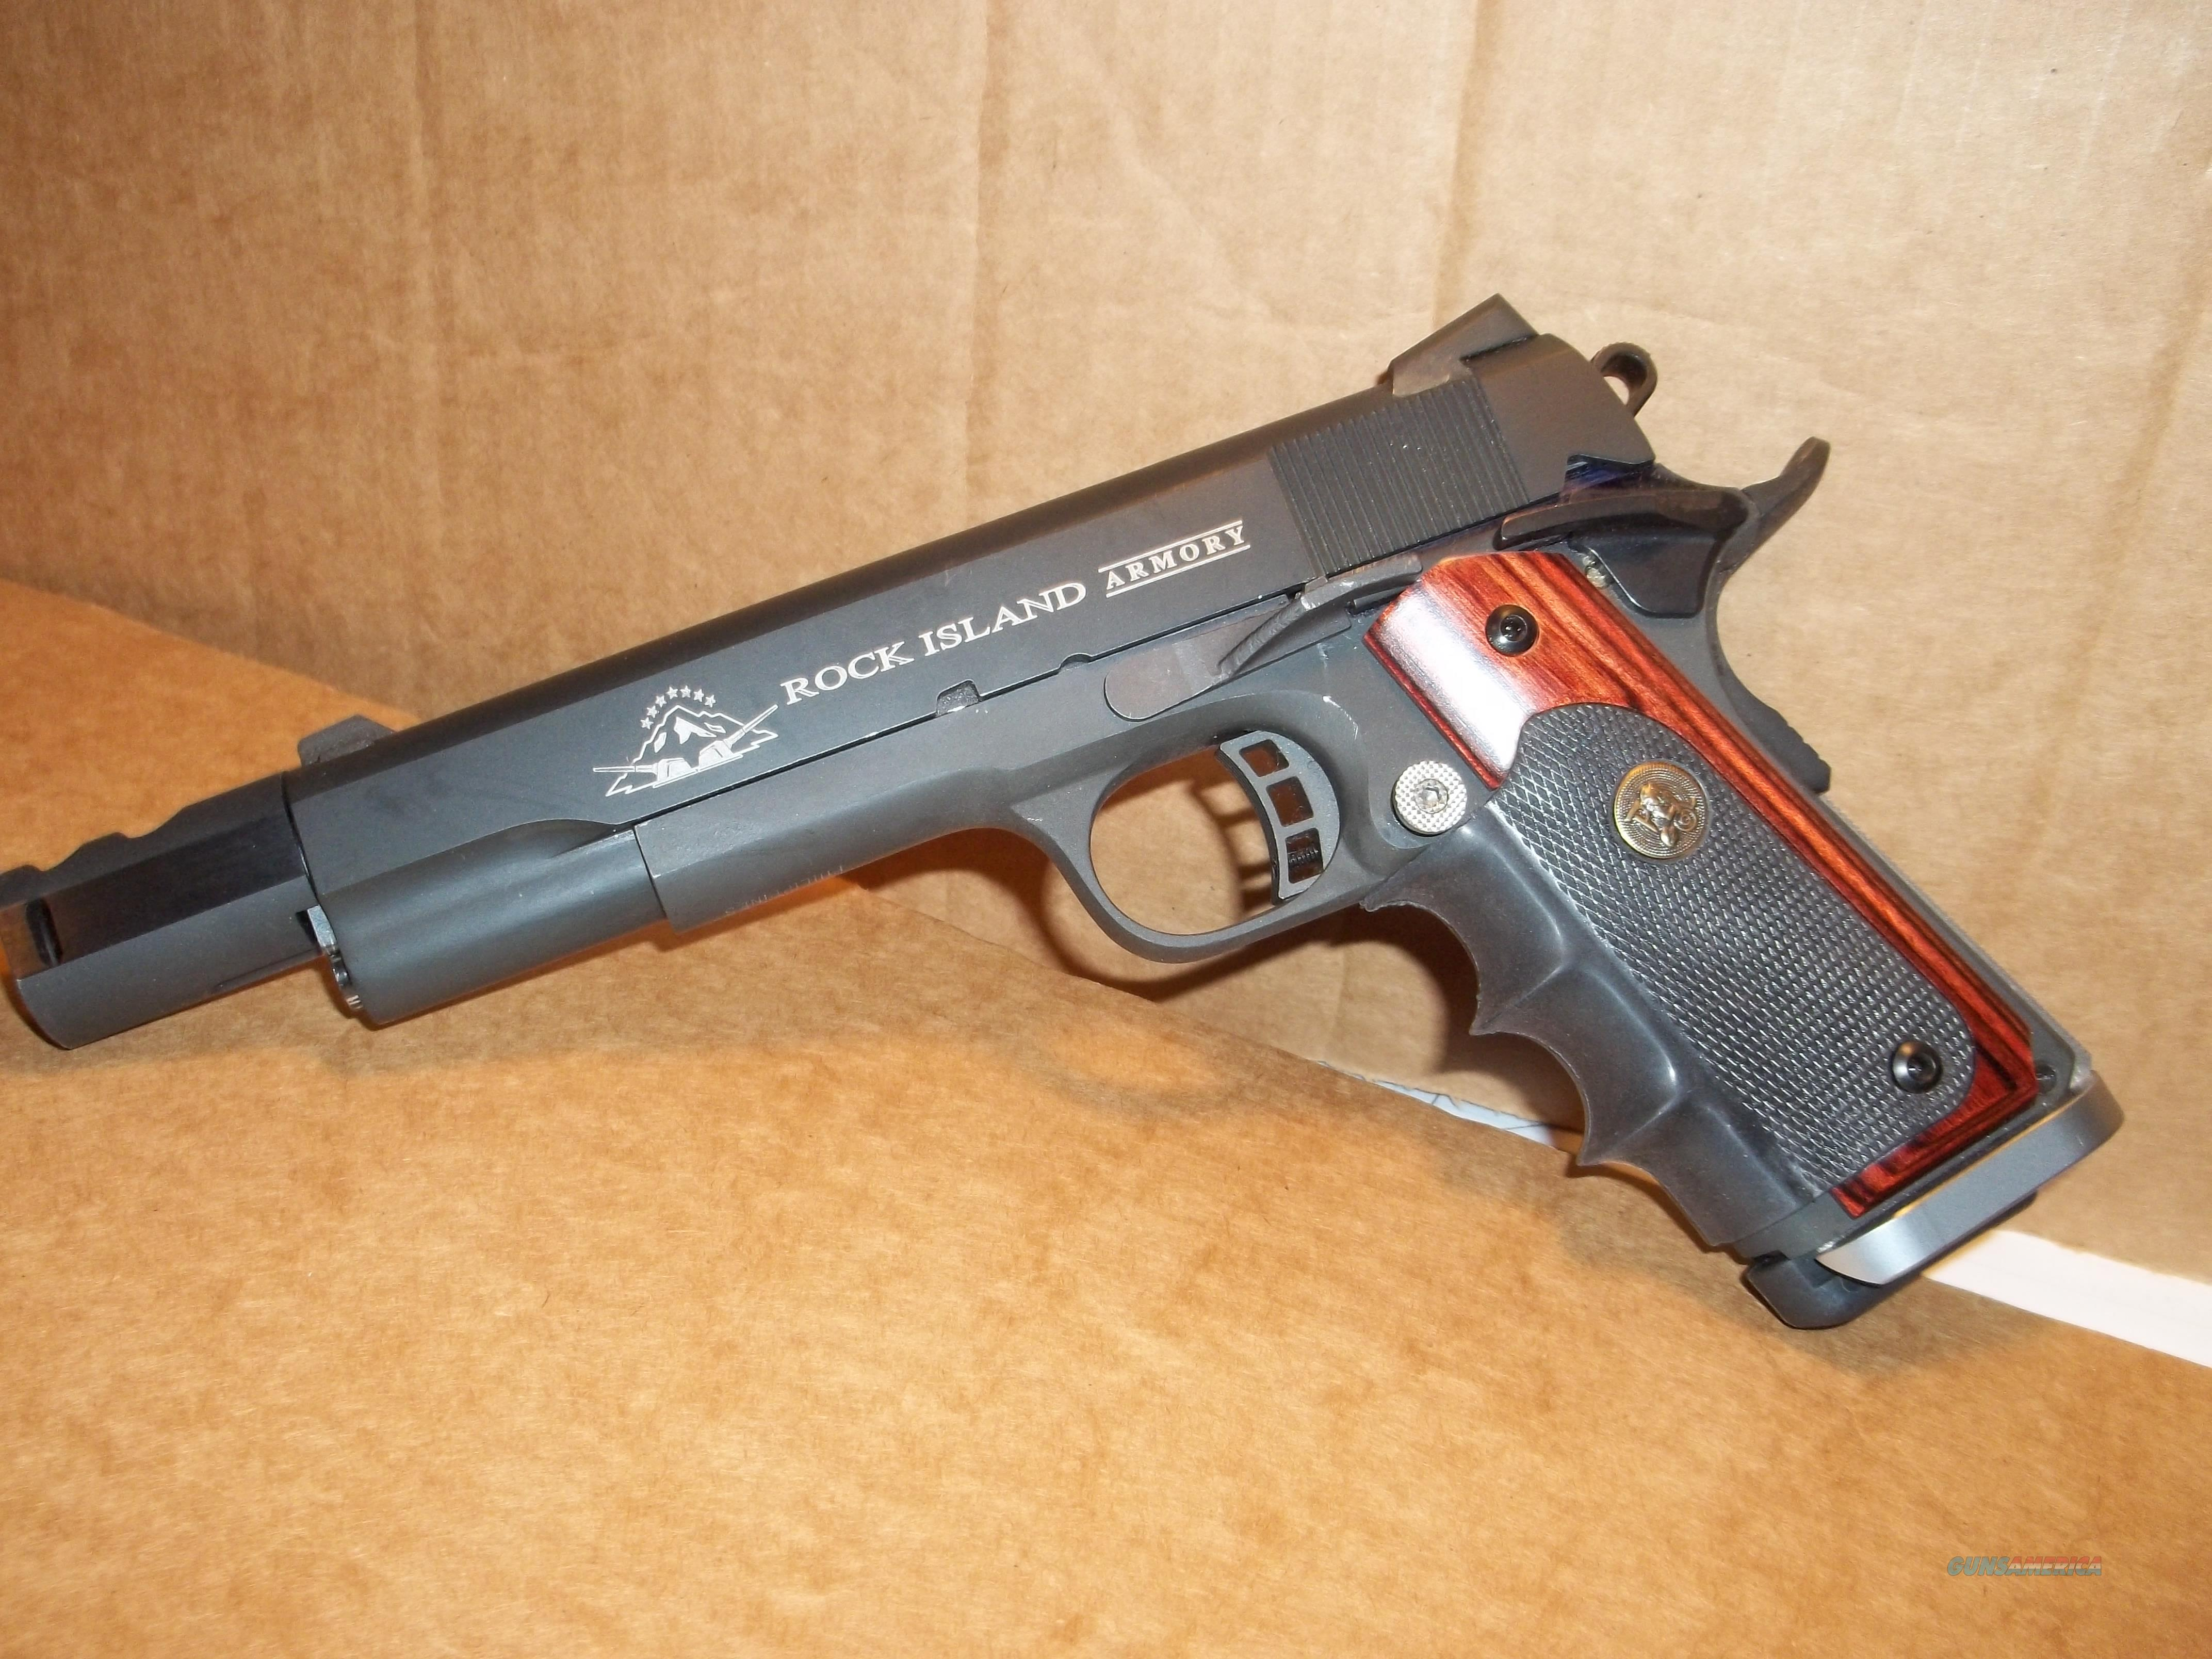 Custom Rock Island 1911 with Compensator  Guns > Pistols > Rock River Arms Pistols